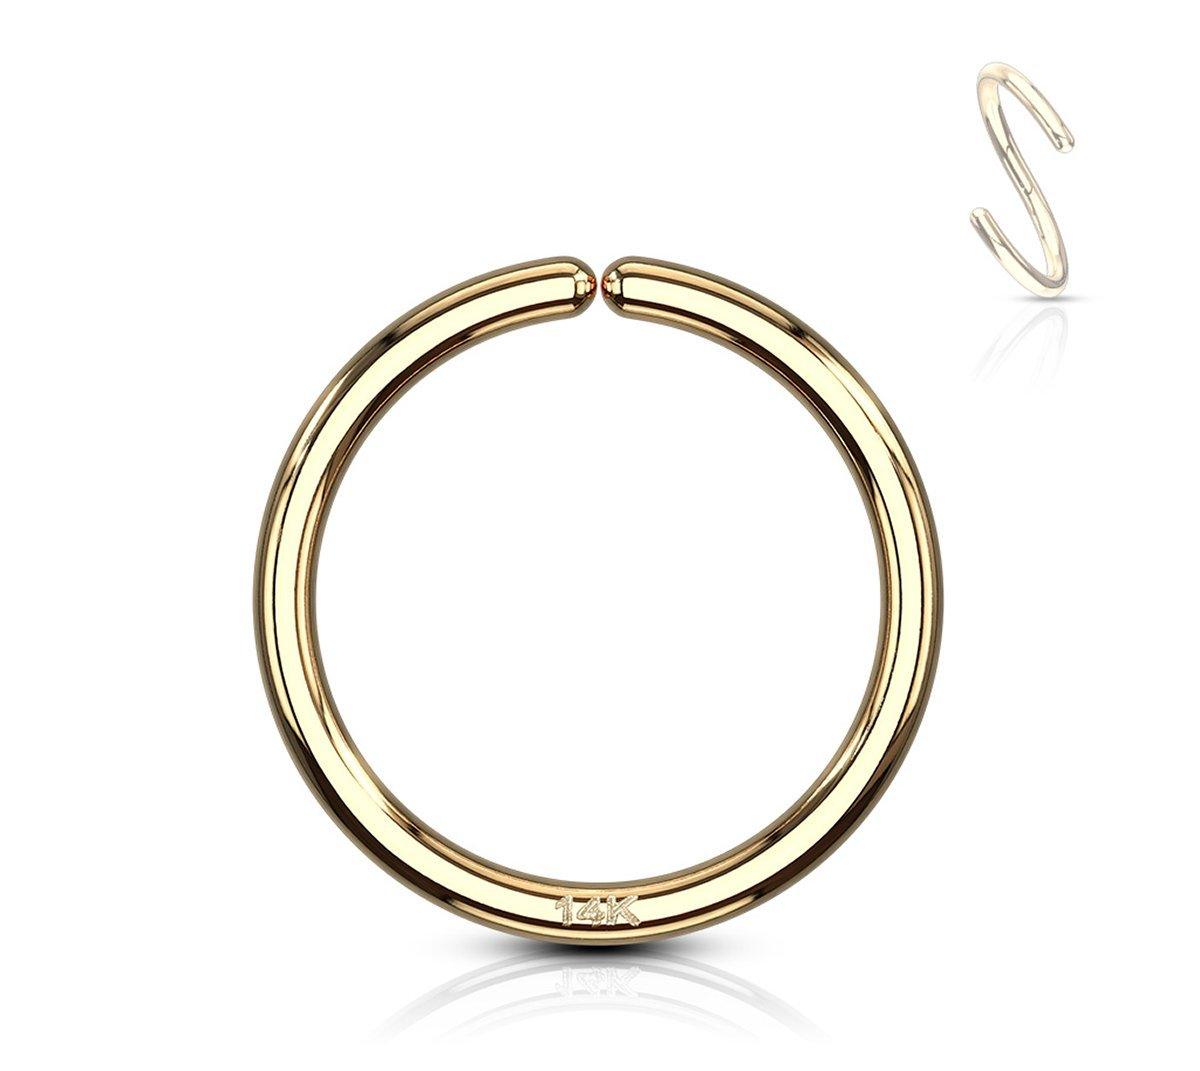 Forbidden Body Jewelry 20g 8mm Solid 14K Yellow Gold Hoop Ring for Nose and Cartilage Piercings by Forbidden Body Jewelry